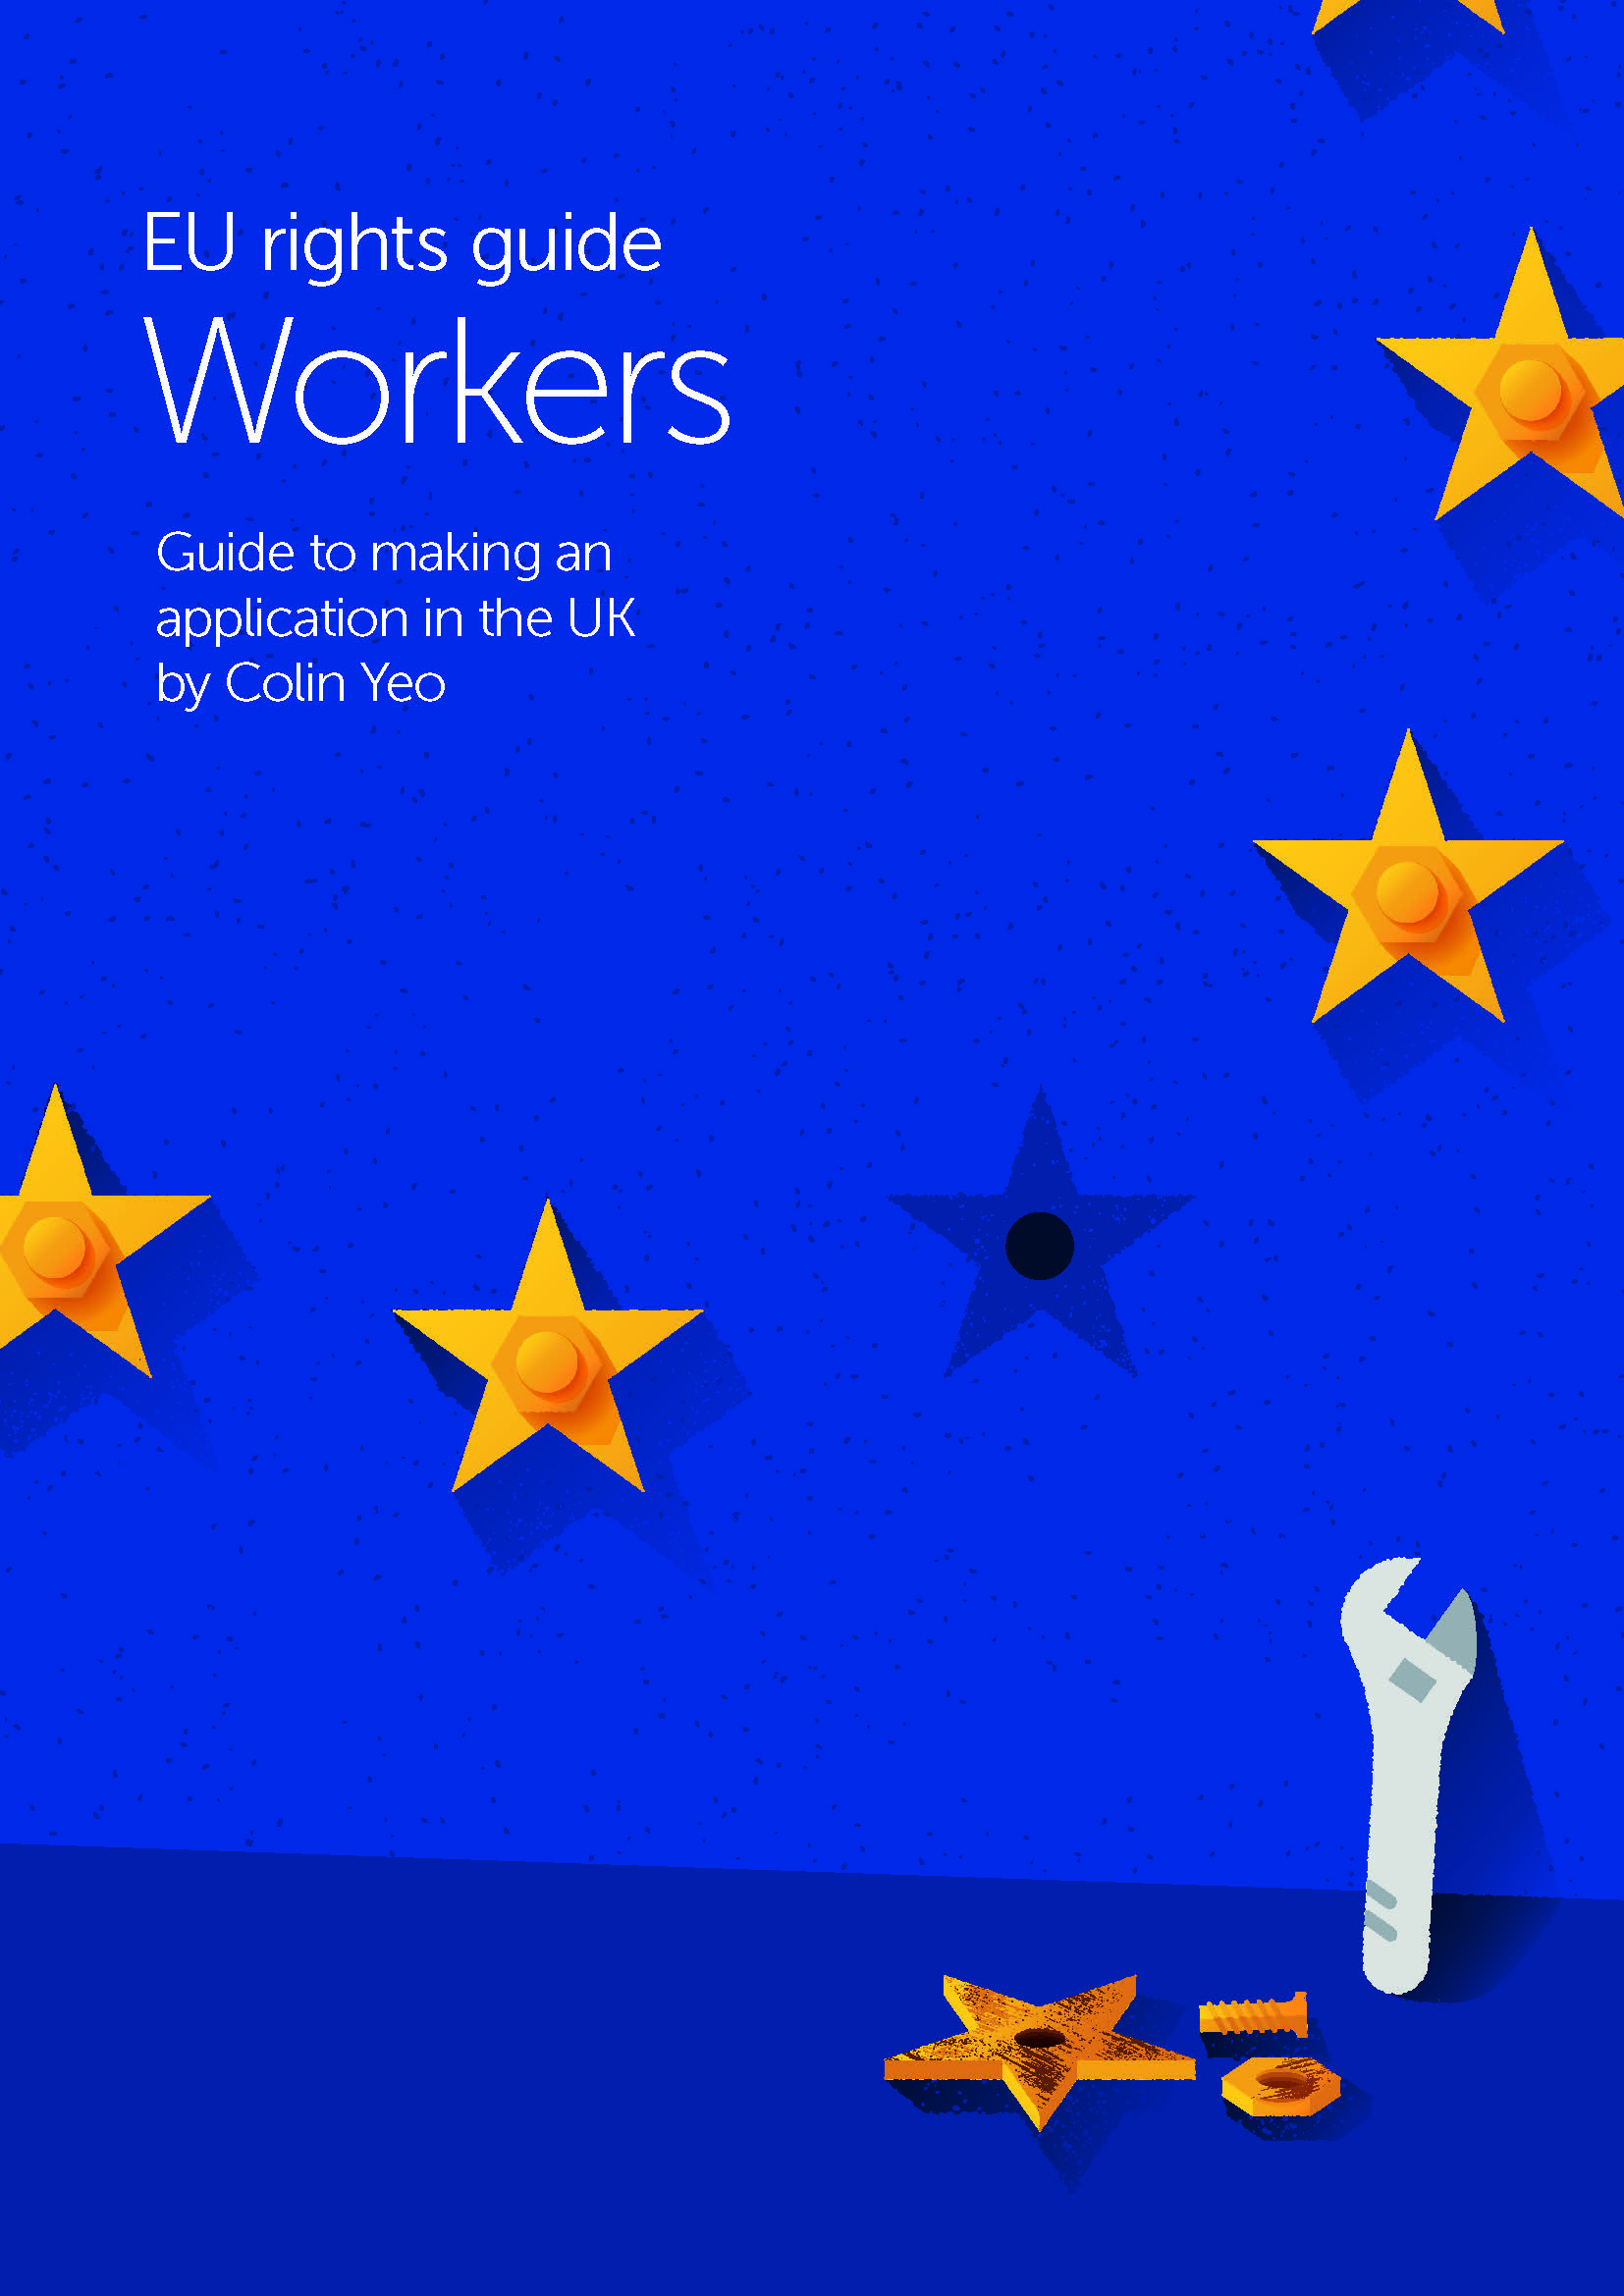 EU rights guide – Workers